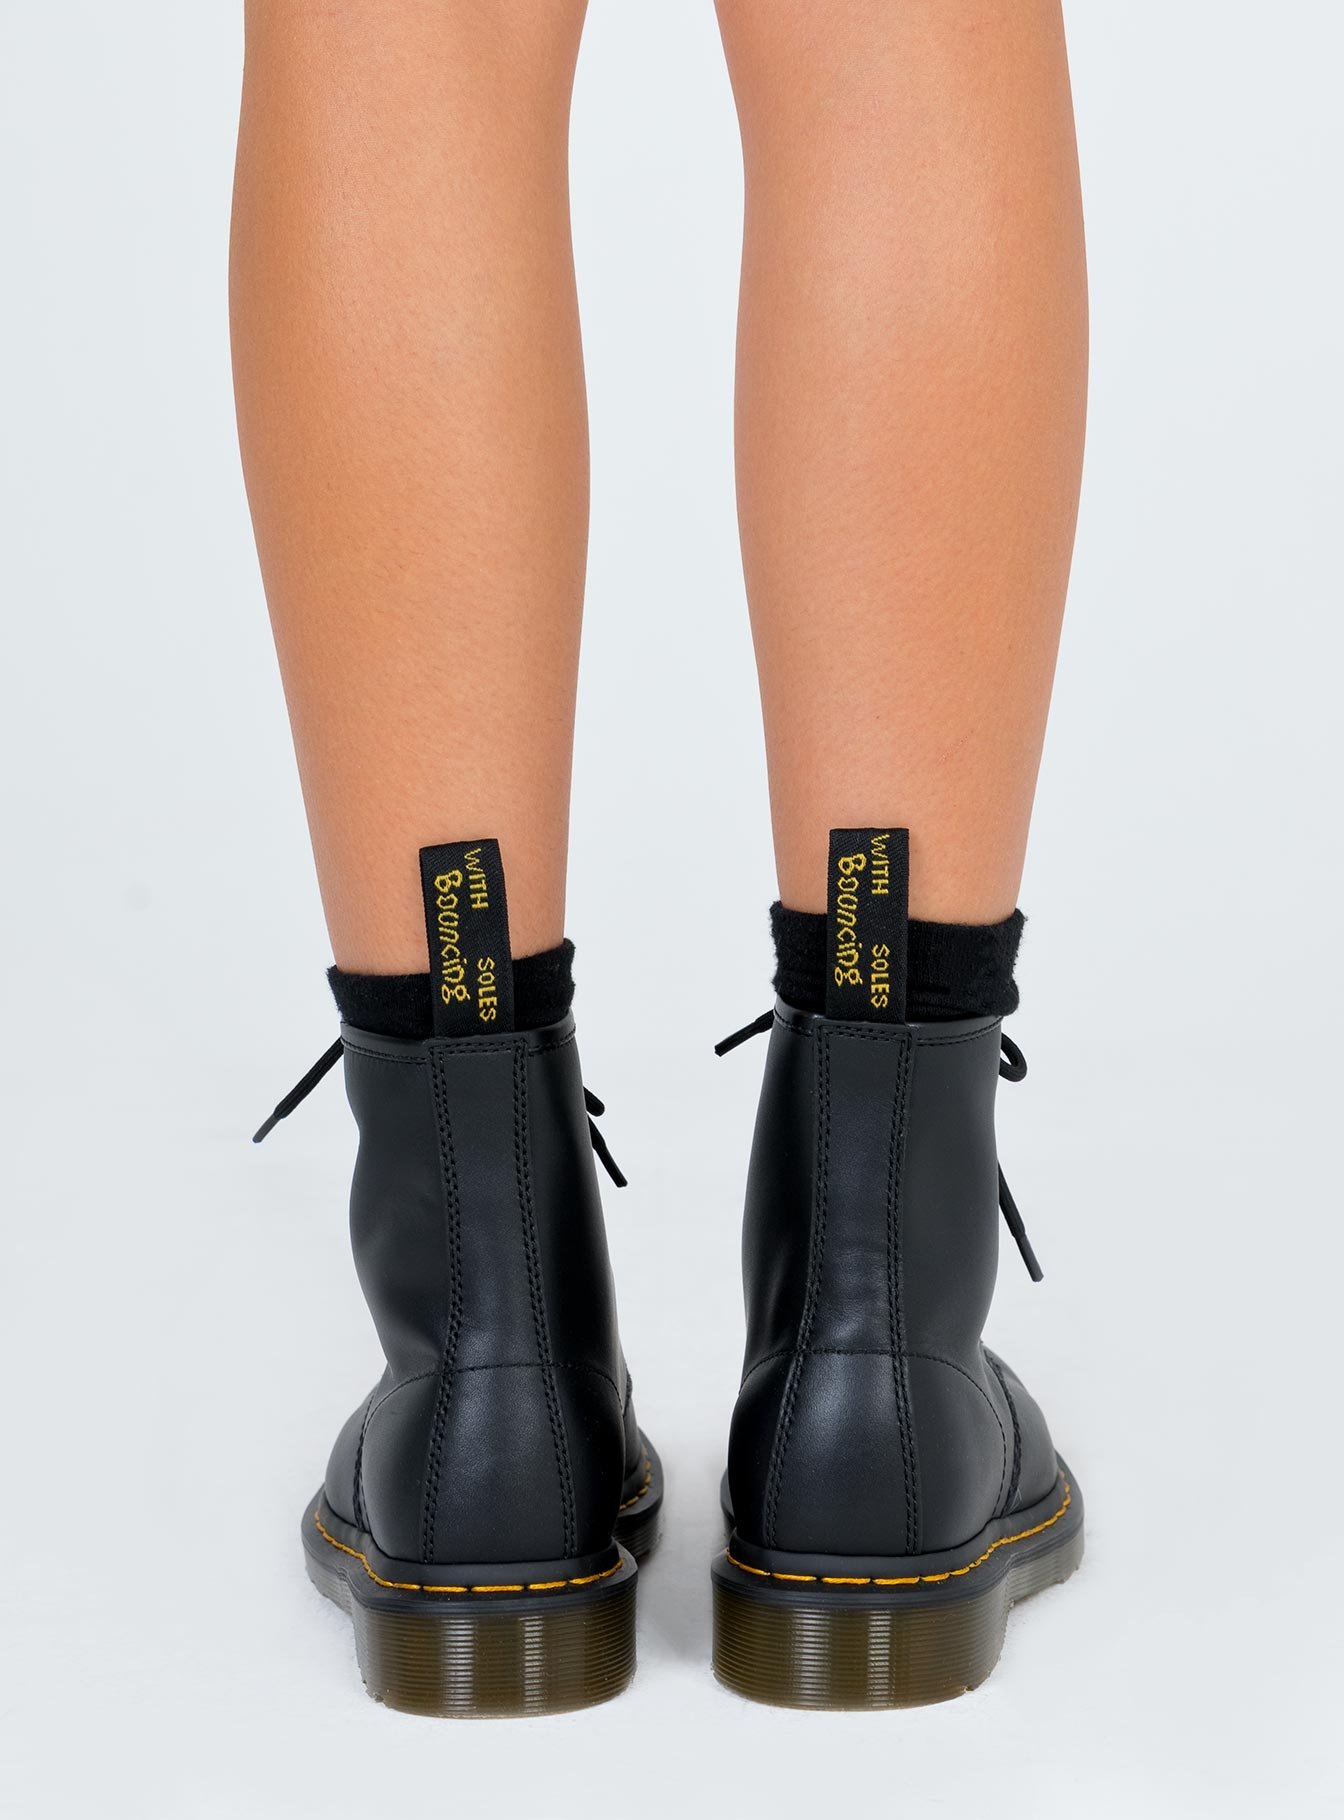 Dr. Martens 1460 Nappa Boots